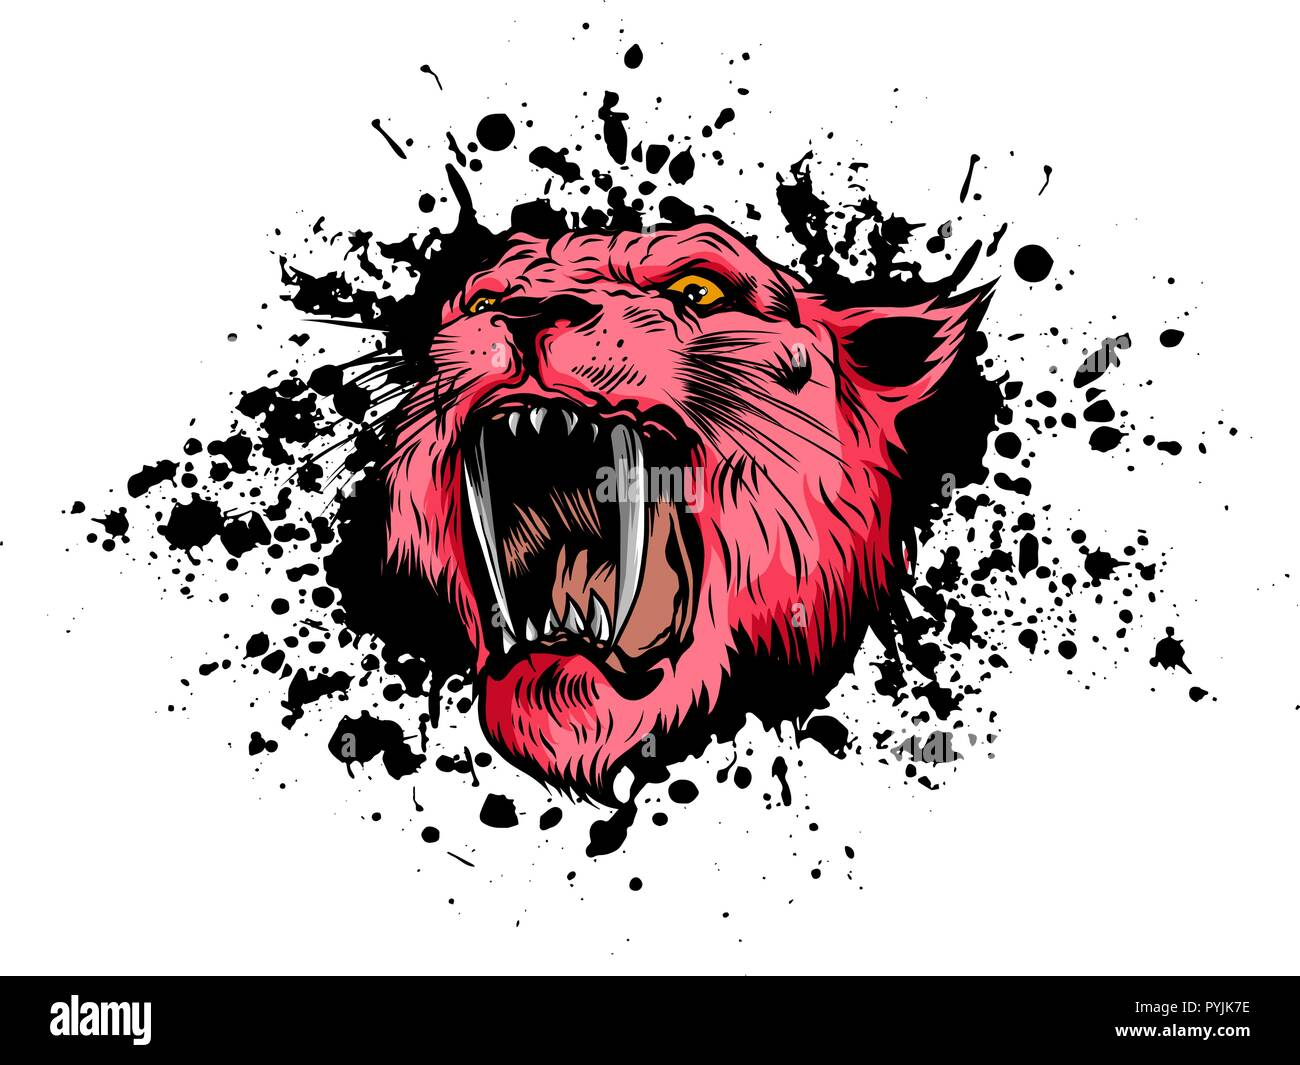 vector illustration Tiger Eyes Mascot Graphic in white background - Stock Vector